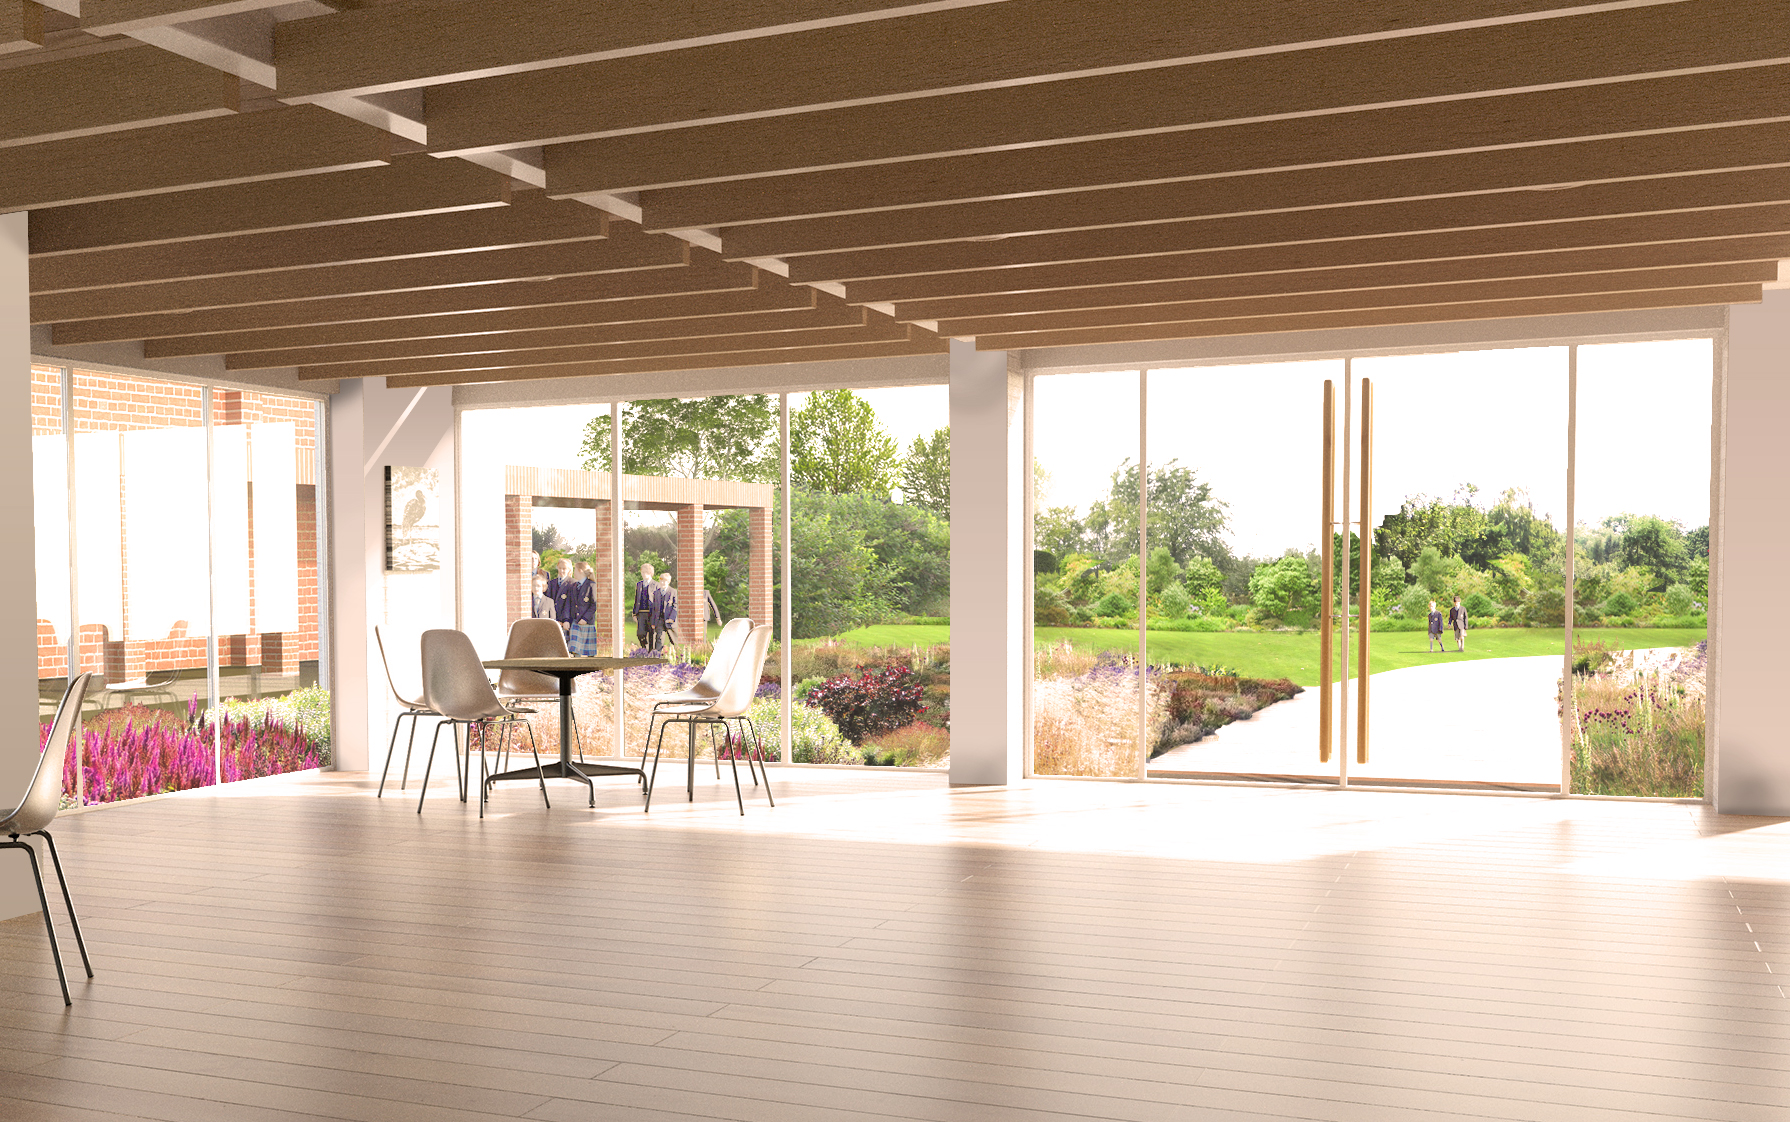 Tate Harmer Blue Forest CranleighSchool Surry Cricketpavilion Render Ster van de Week